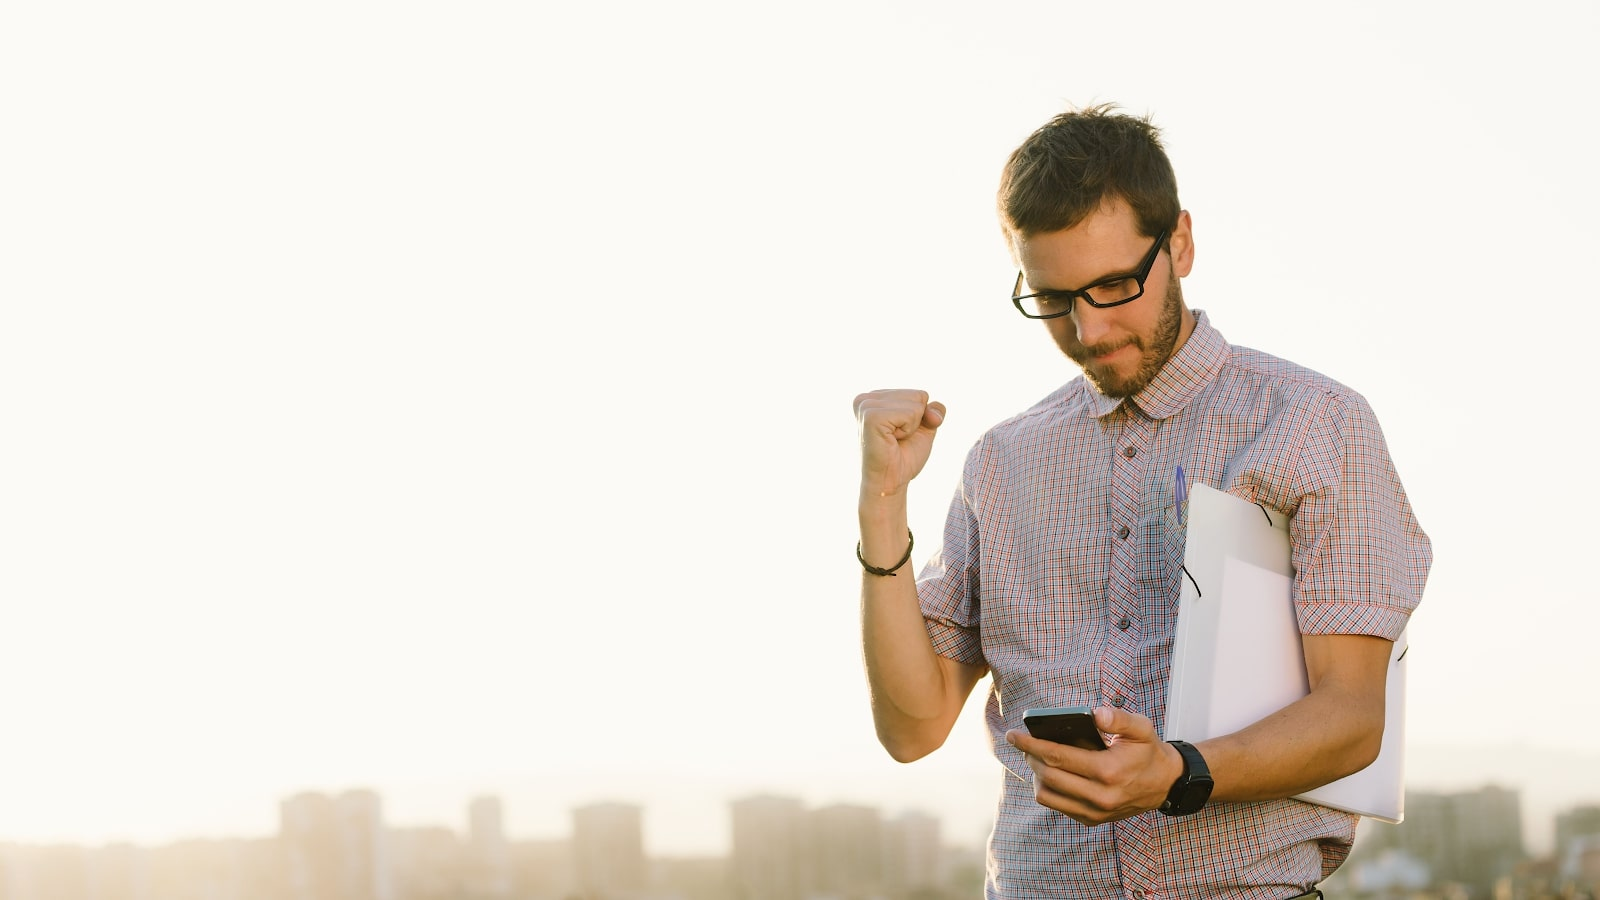 Working professional carrying documents outdoors pumps his fist while looking at a smartphone